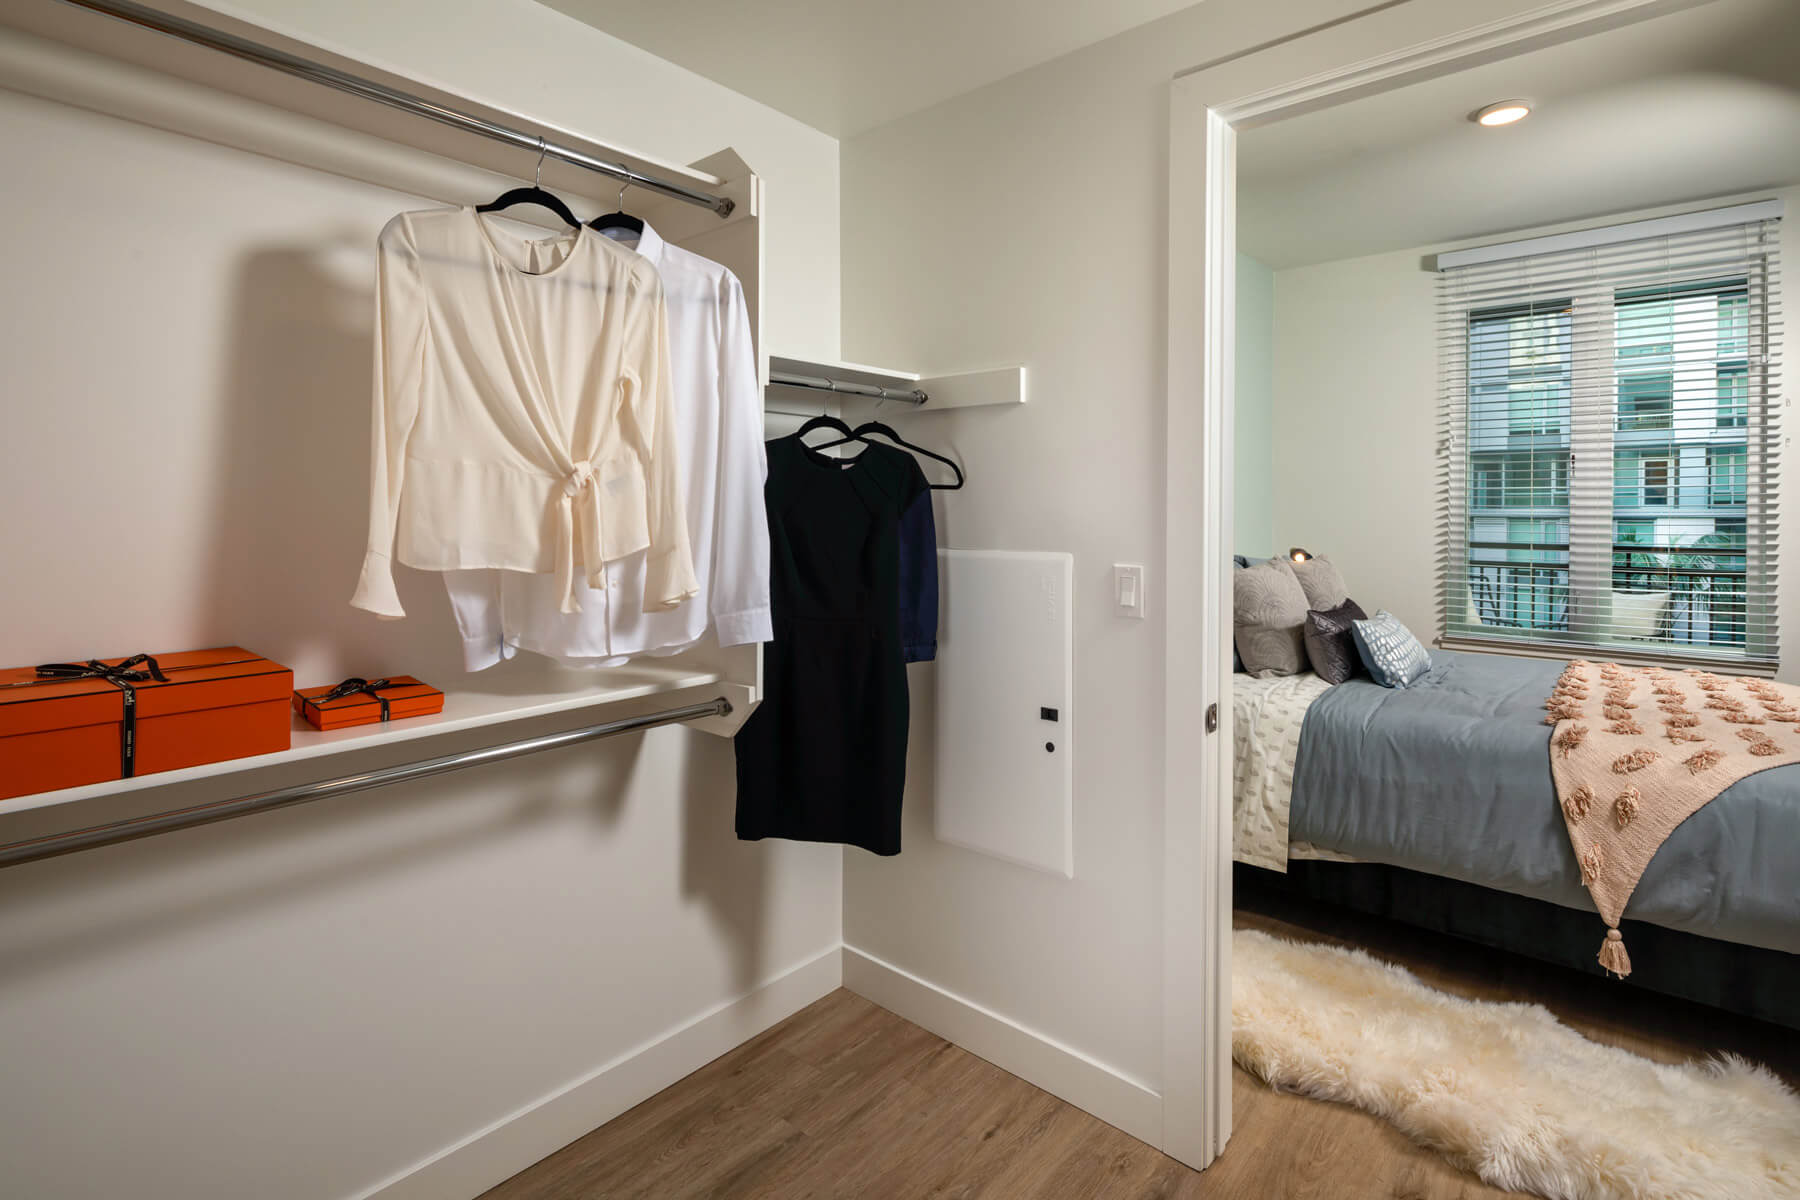 Two Bedroom Residence Master Bedroom Closet